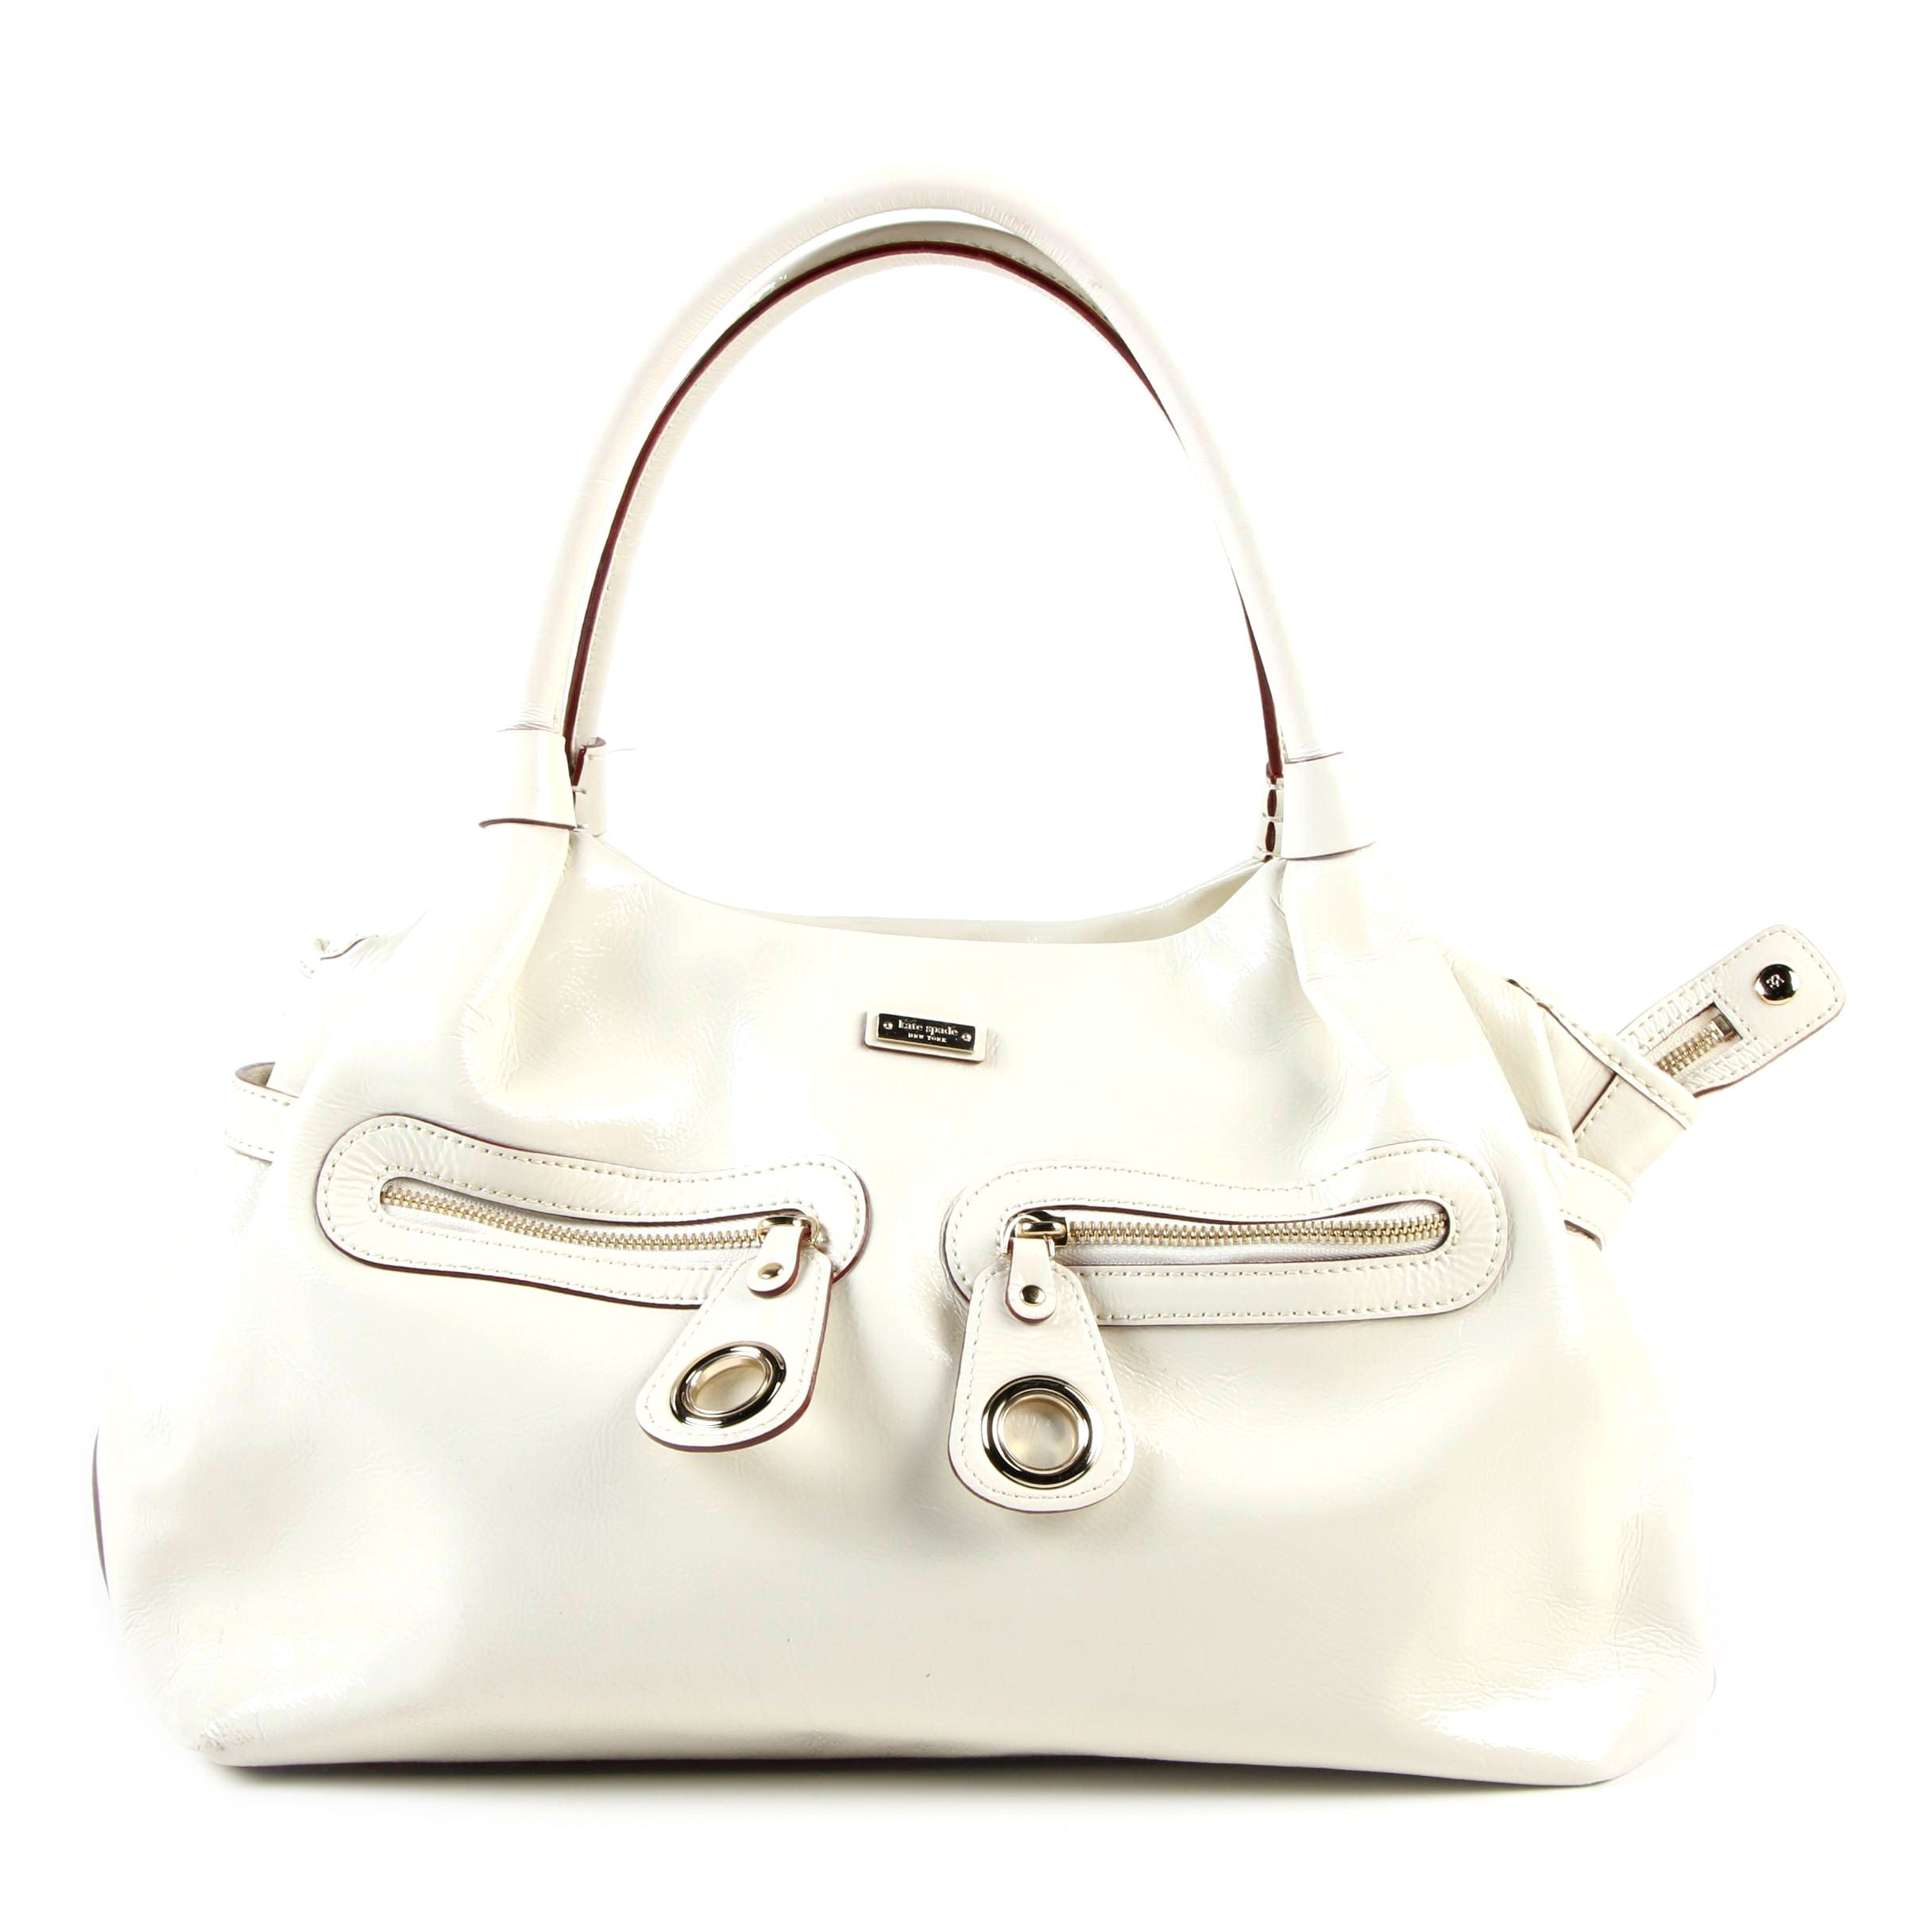 Kate Spade New York White Patent Leather Satchel